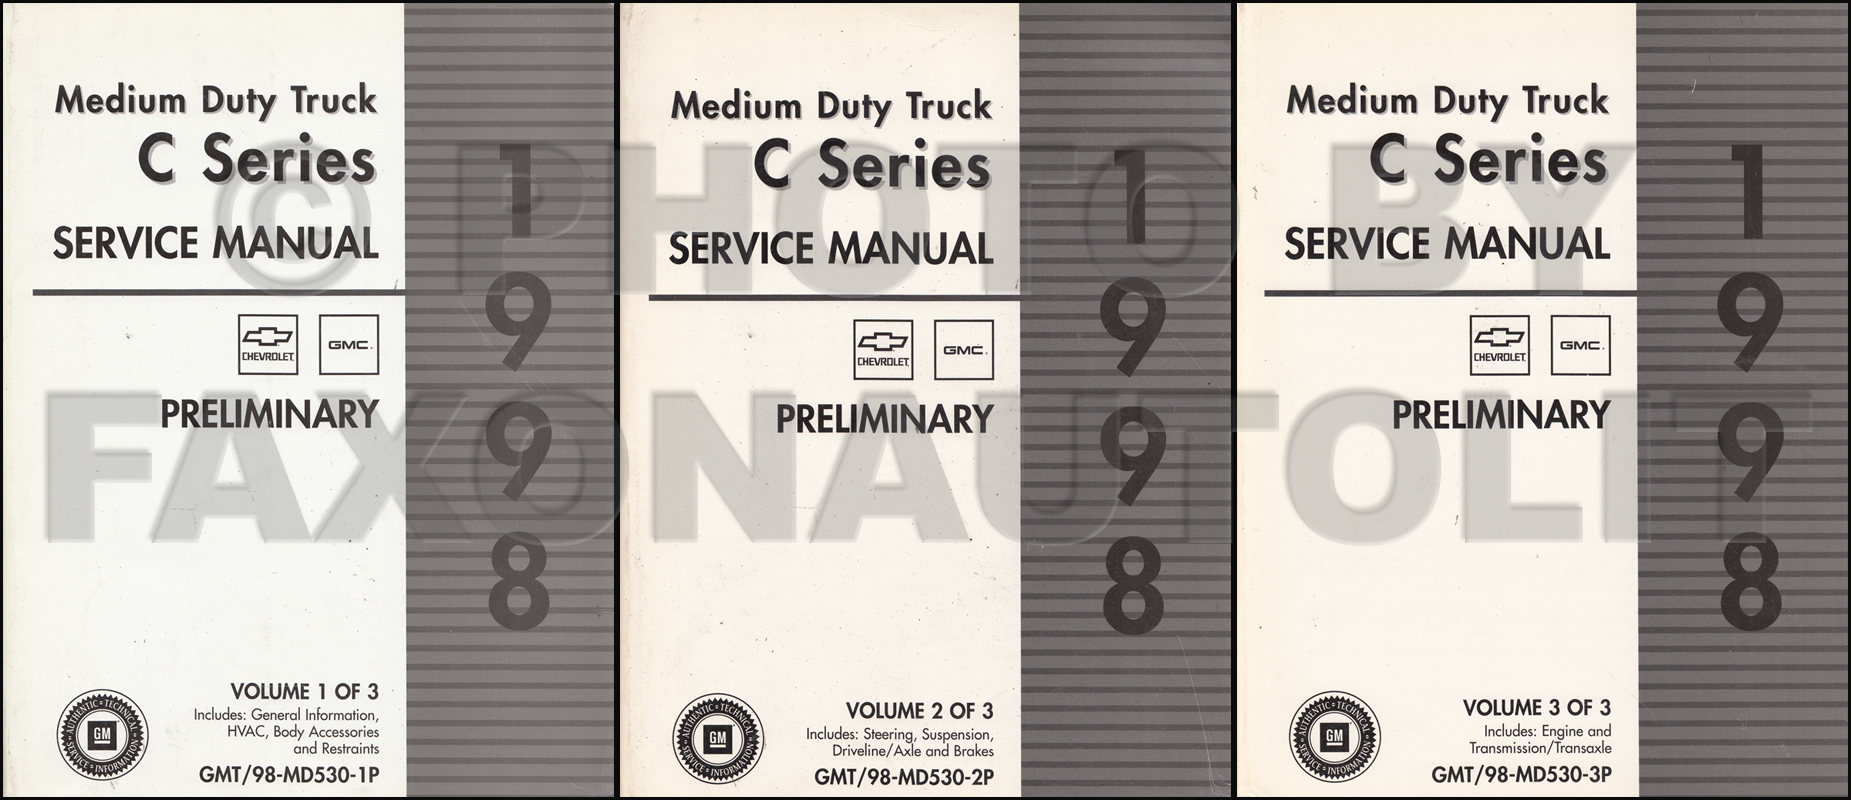 1998 Gmc  Chevy C 7000 Topkick And Kodiak Repair Shop Manual Original Set